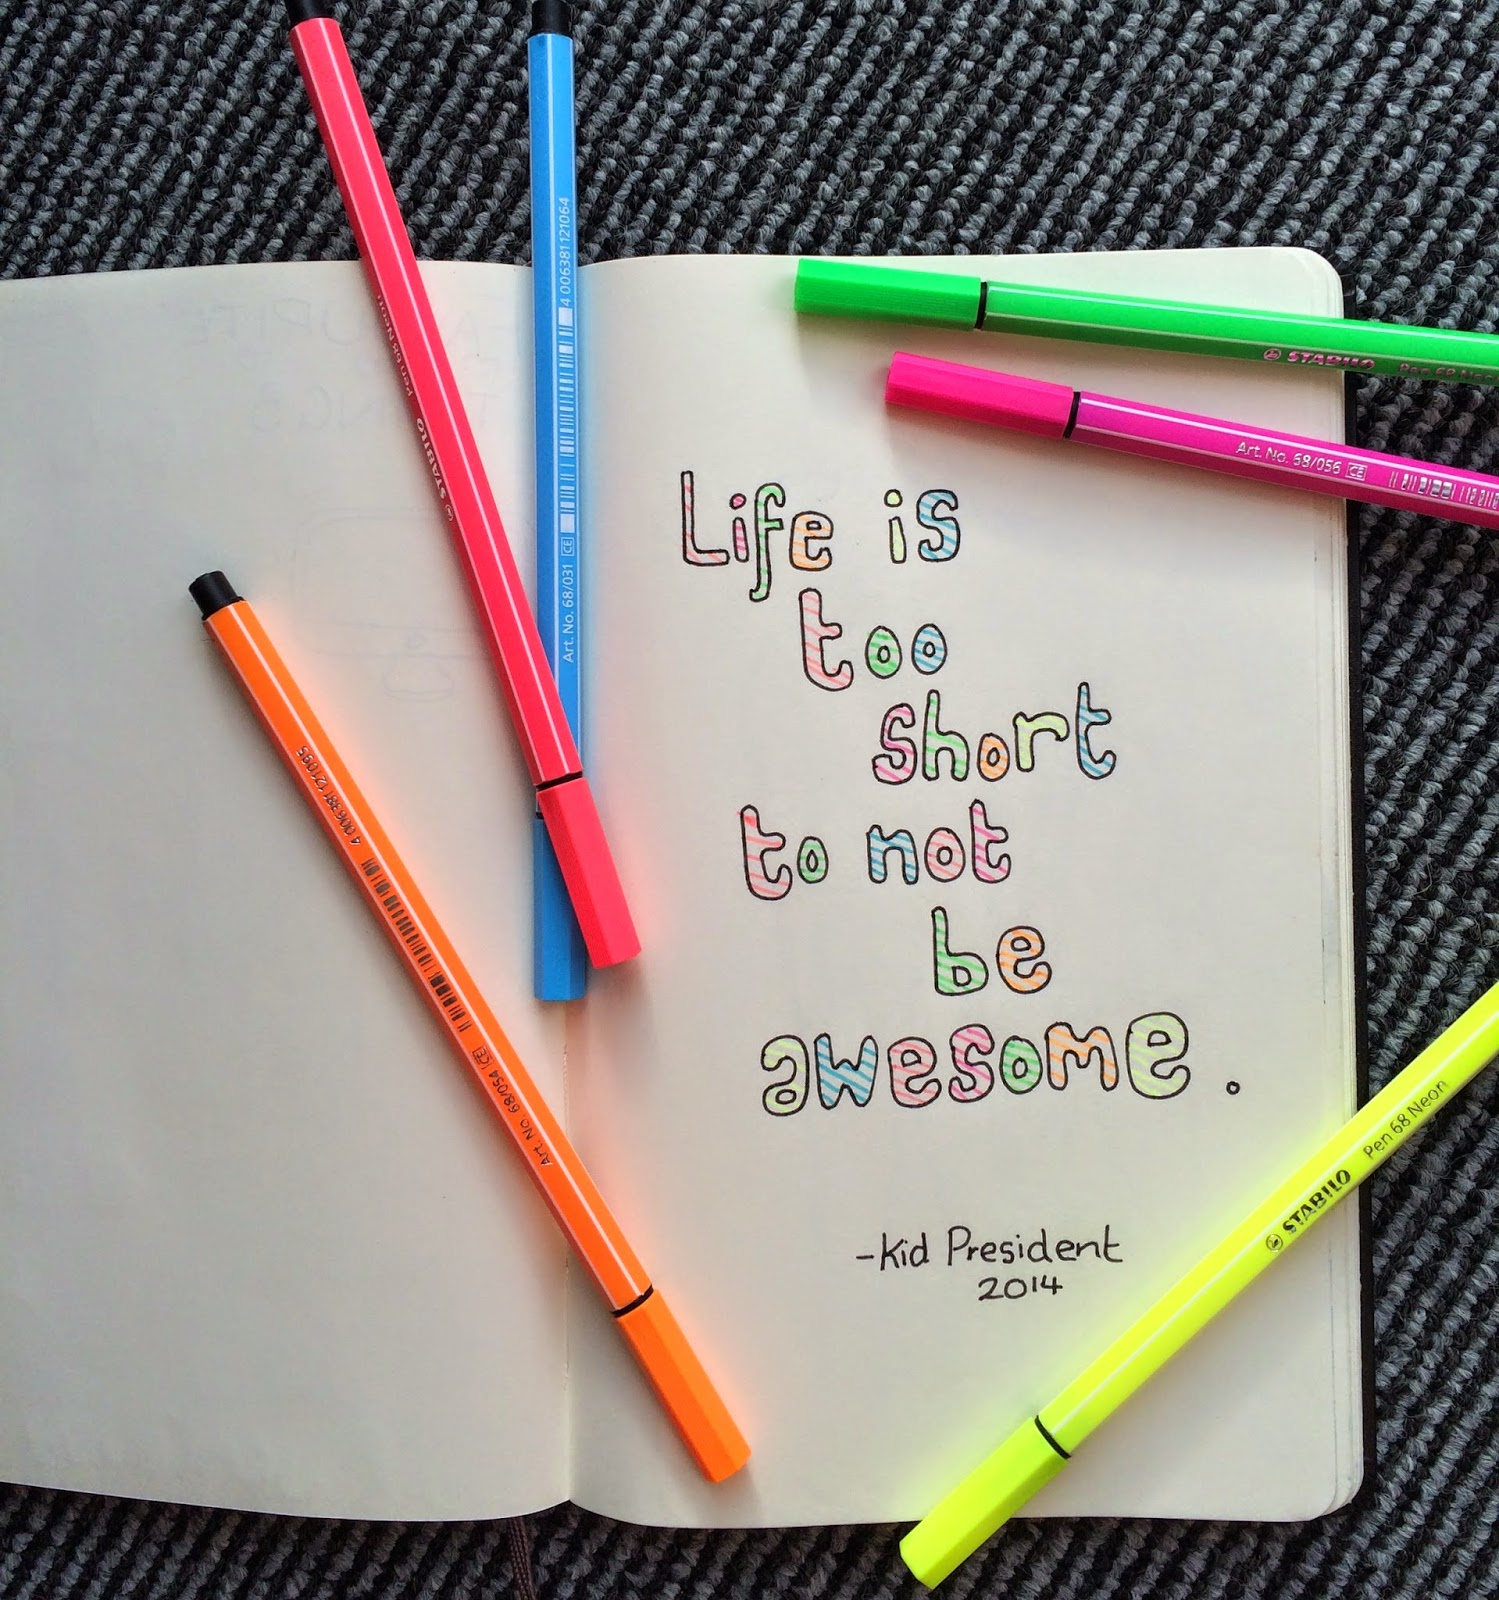 life-is-too-short-to-not-be-awesome-quote